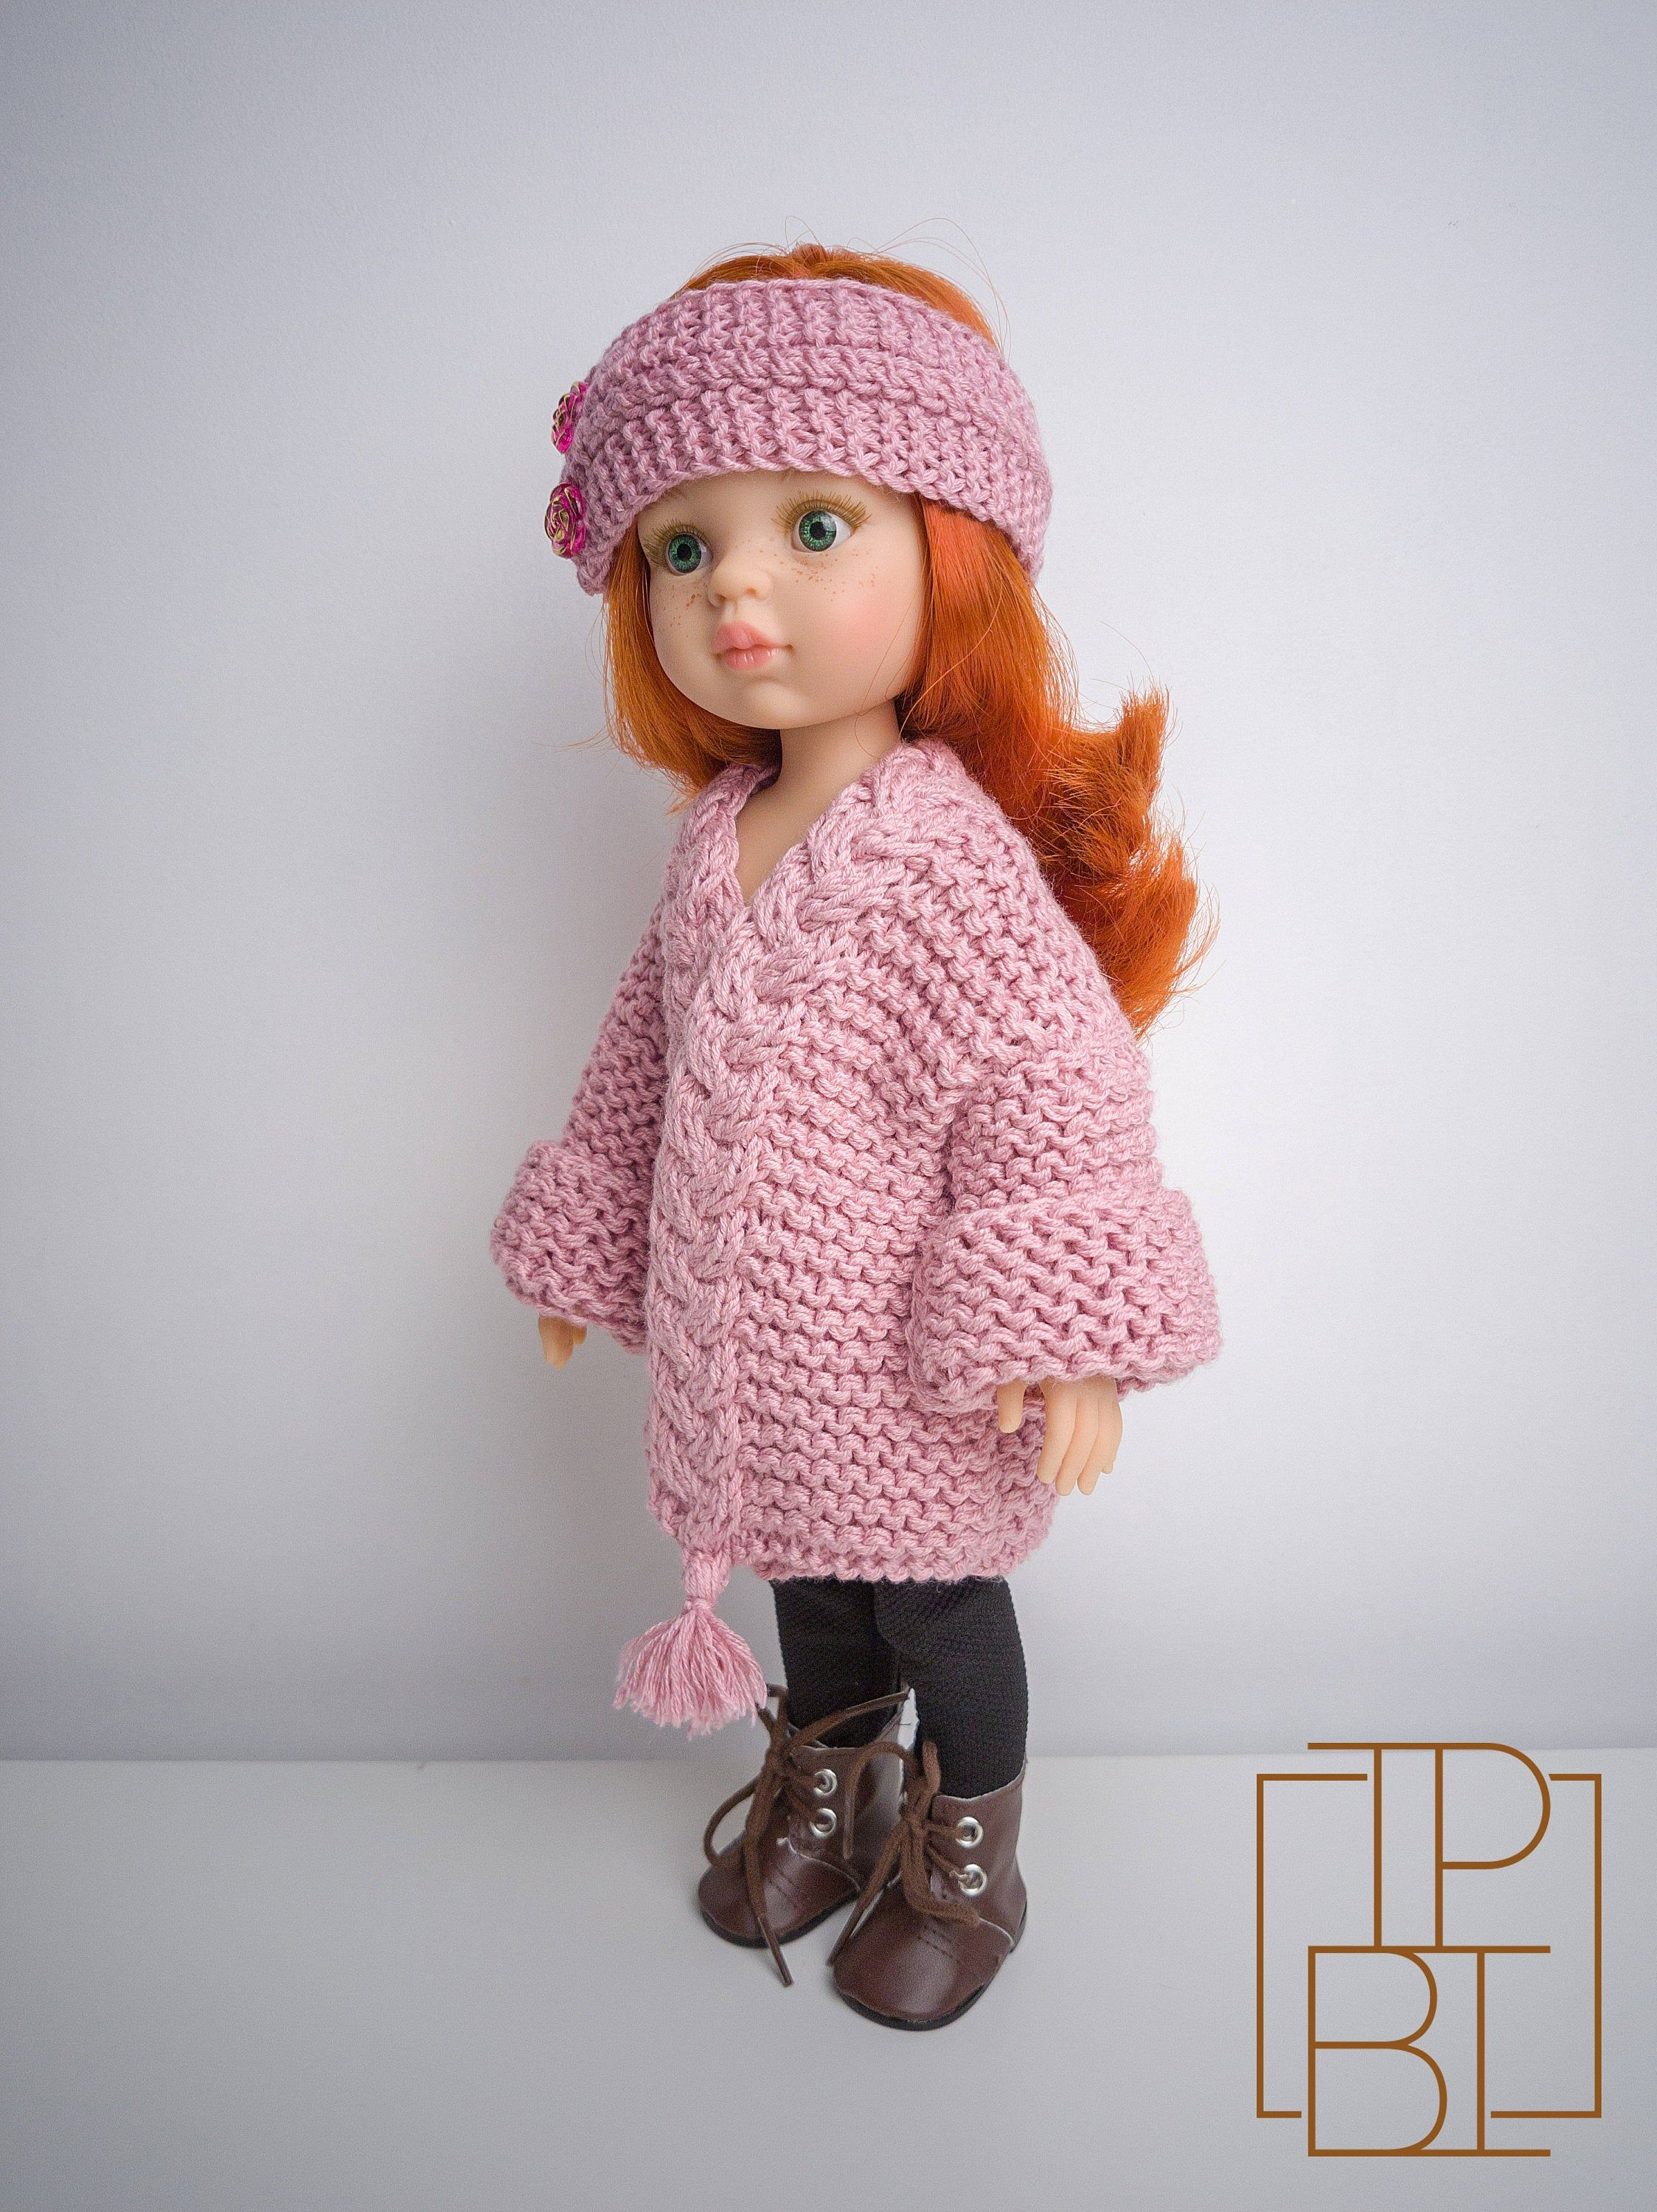 Paola Reina Doll Chunky Cardigan - Knitting Pattern for 13 Paola Doll and Little Darling Doll